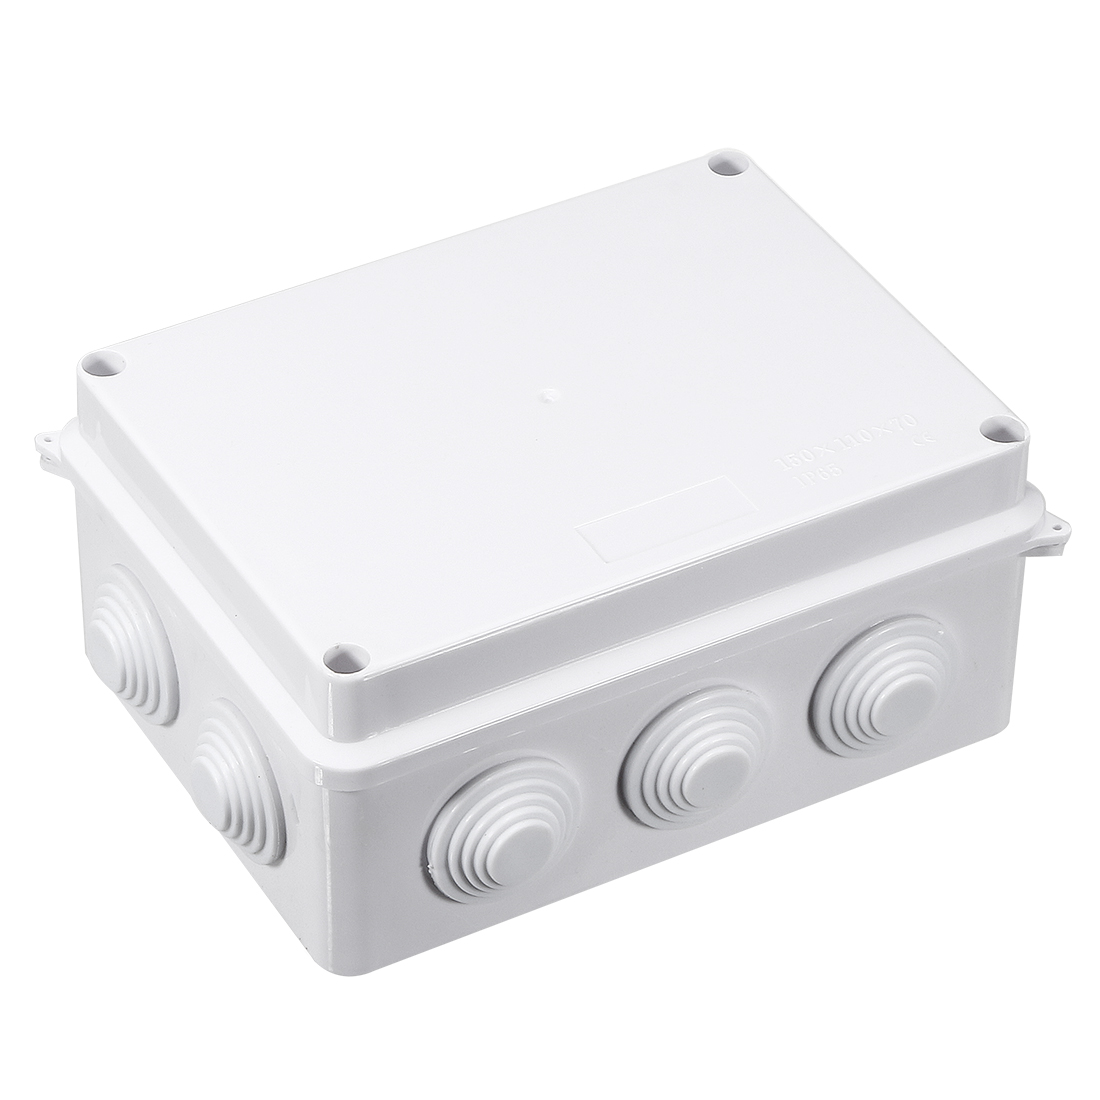 ABS Dustproof IP65 Sealed Electric Cable Junction Box 150x110x70mm